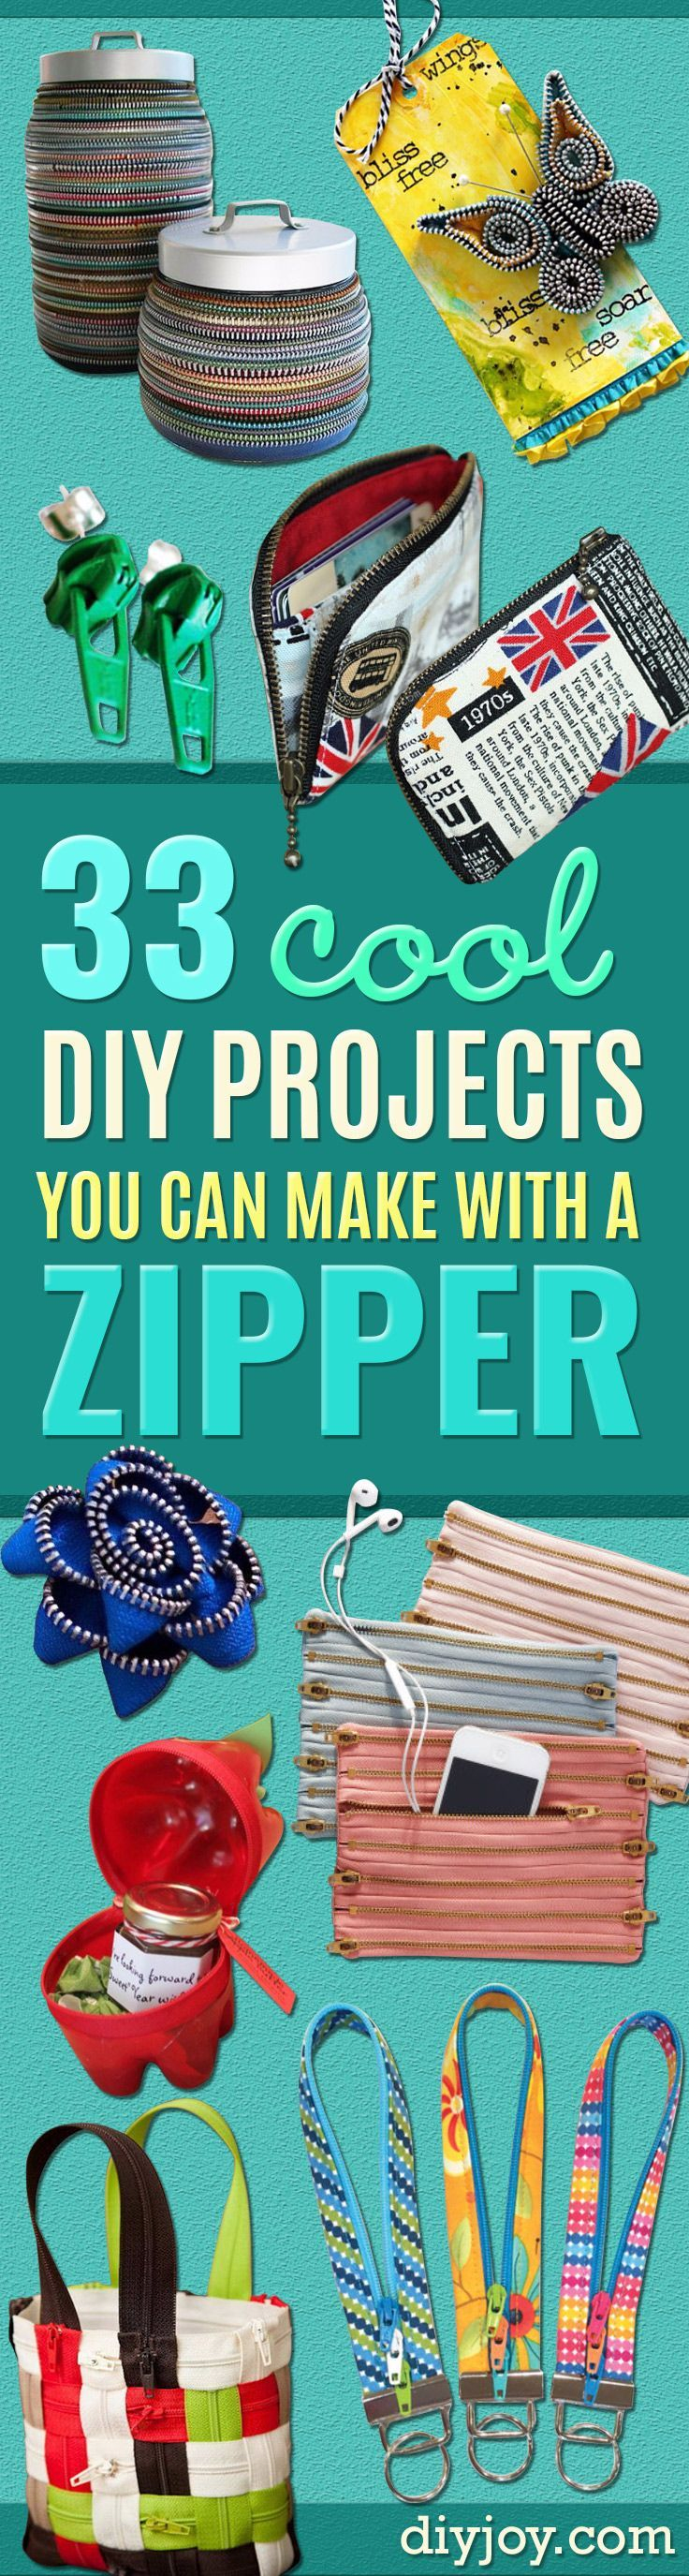 Cool DIY Projects You Can Make With A Zipper Creative School - Best weekend diy projects ideas